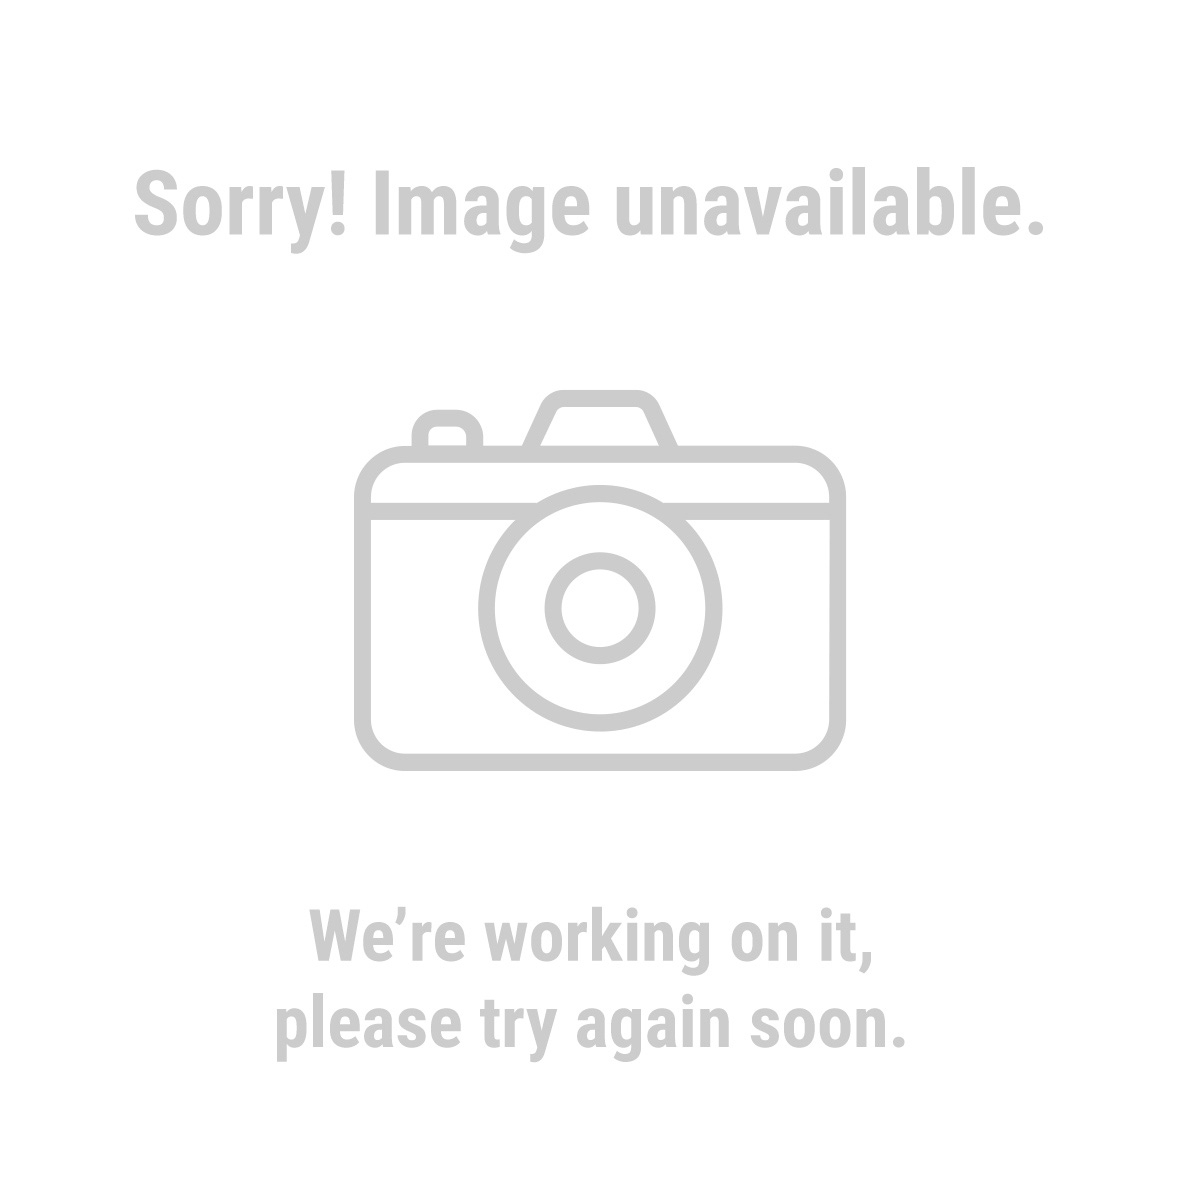 HARDY 66374 Nylon Knit Gloves with Nitrile Palms, Large